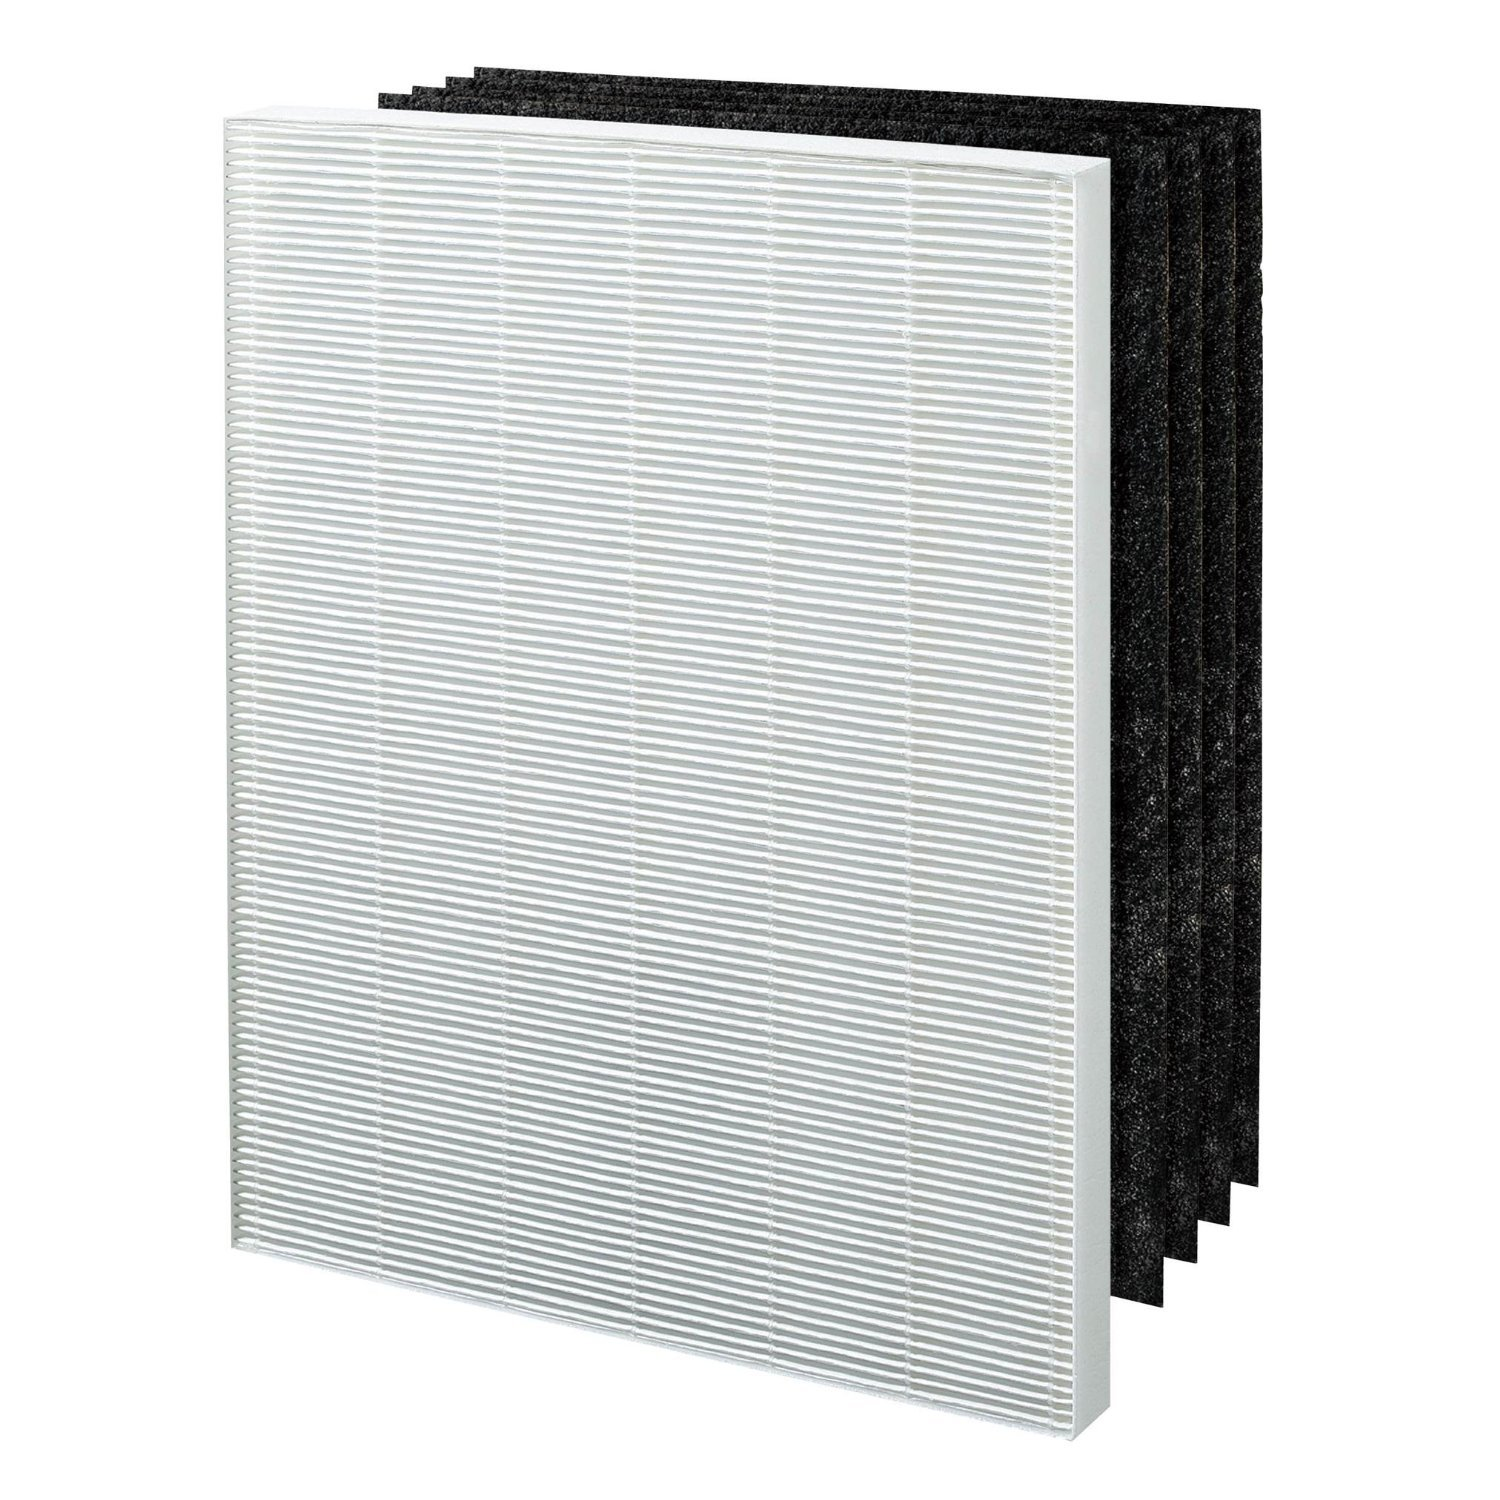 1 Fellowes HEPA Air Purifier Filter 4 Carbon Filters fits Fellowes AP-300PH Air Purifier - Compare #HF-300 - Designed & Engineered By Vacuum Savings 4 pieces lot vacuum cleaner parts air filter hepa 13 replacement for philip s filter fc9250 fc9300 fc9150 fc 8038 01